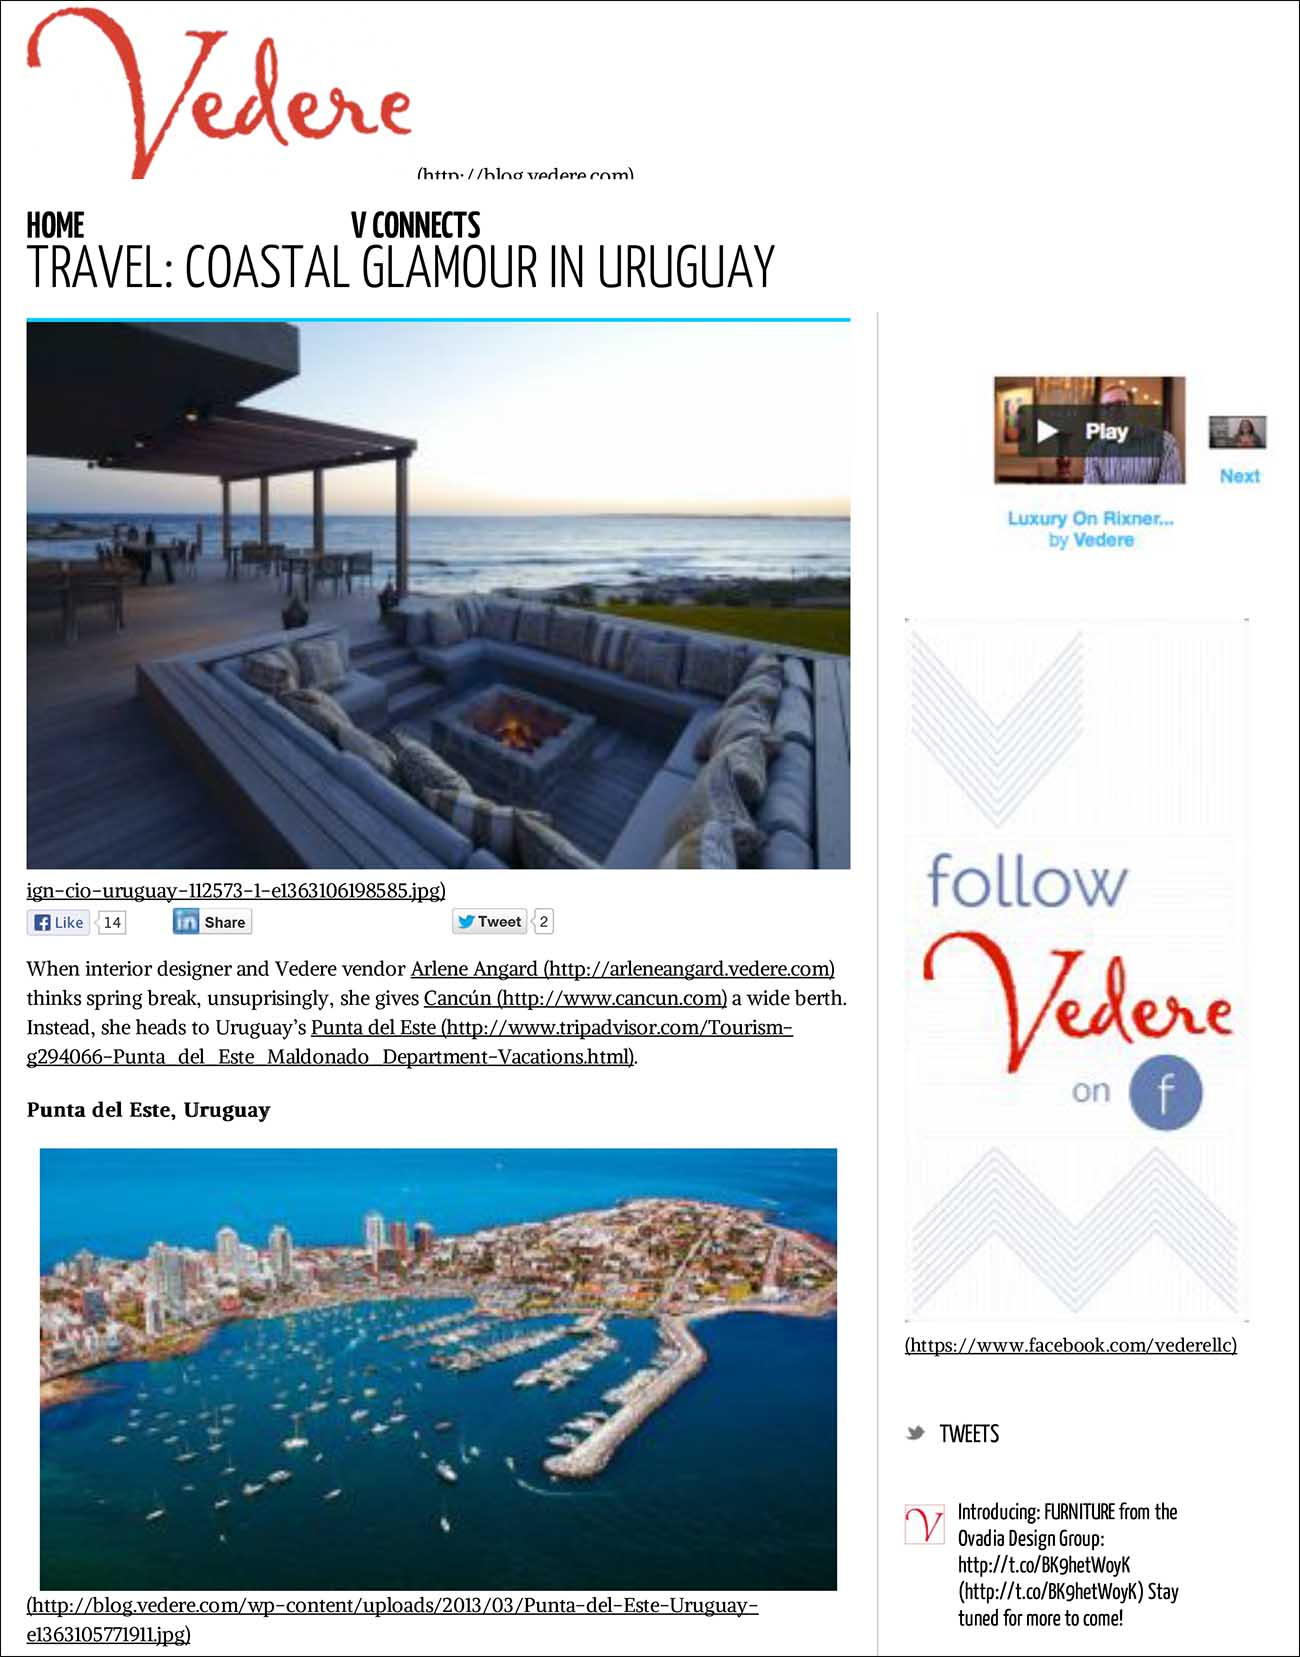 TraVel: Coastal Glamour in Uruguay - Vedere Blog